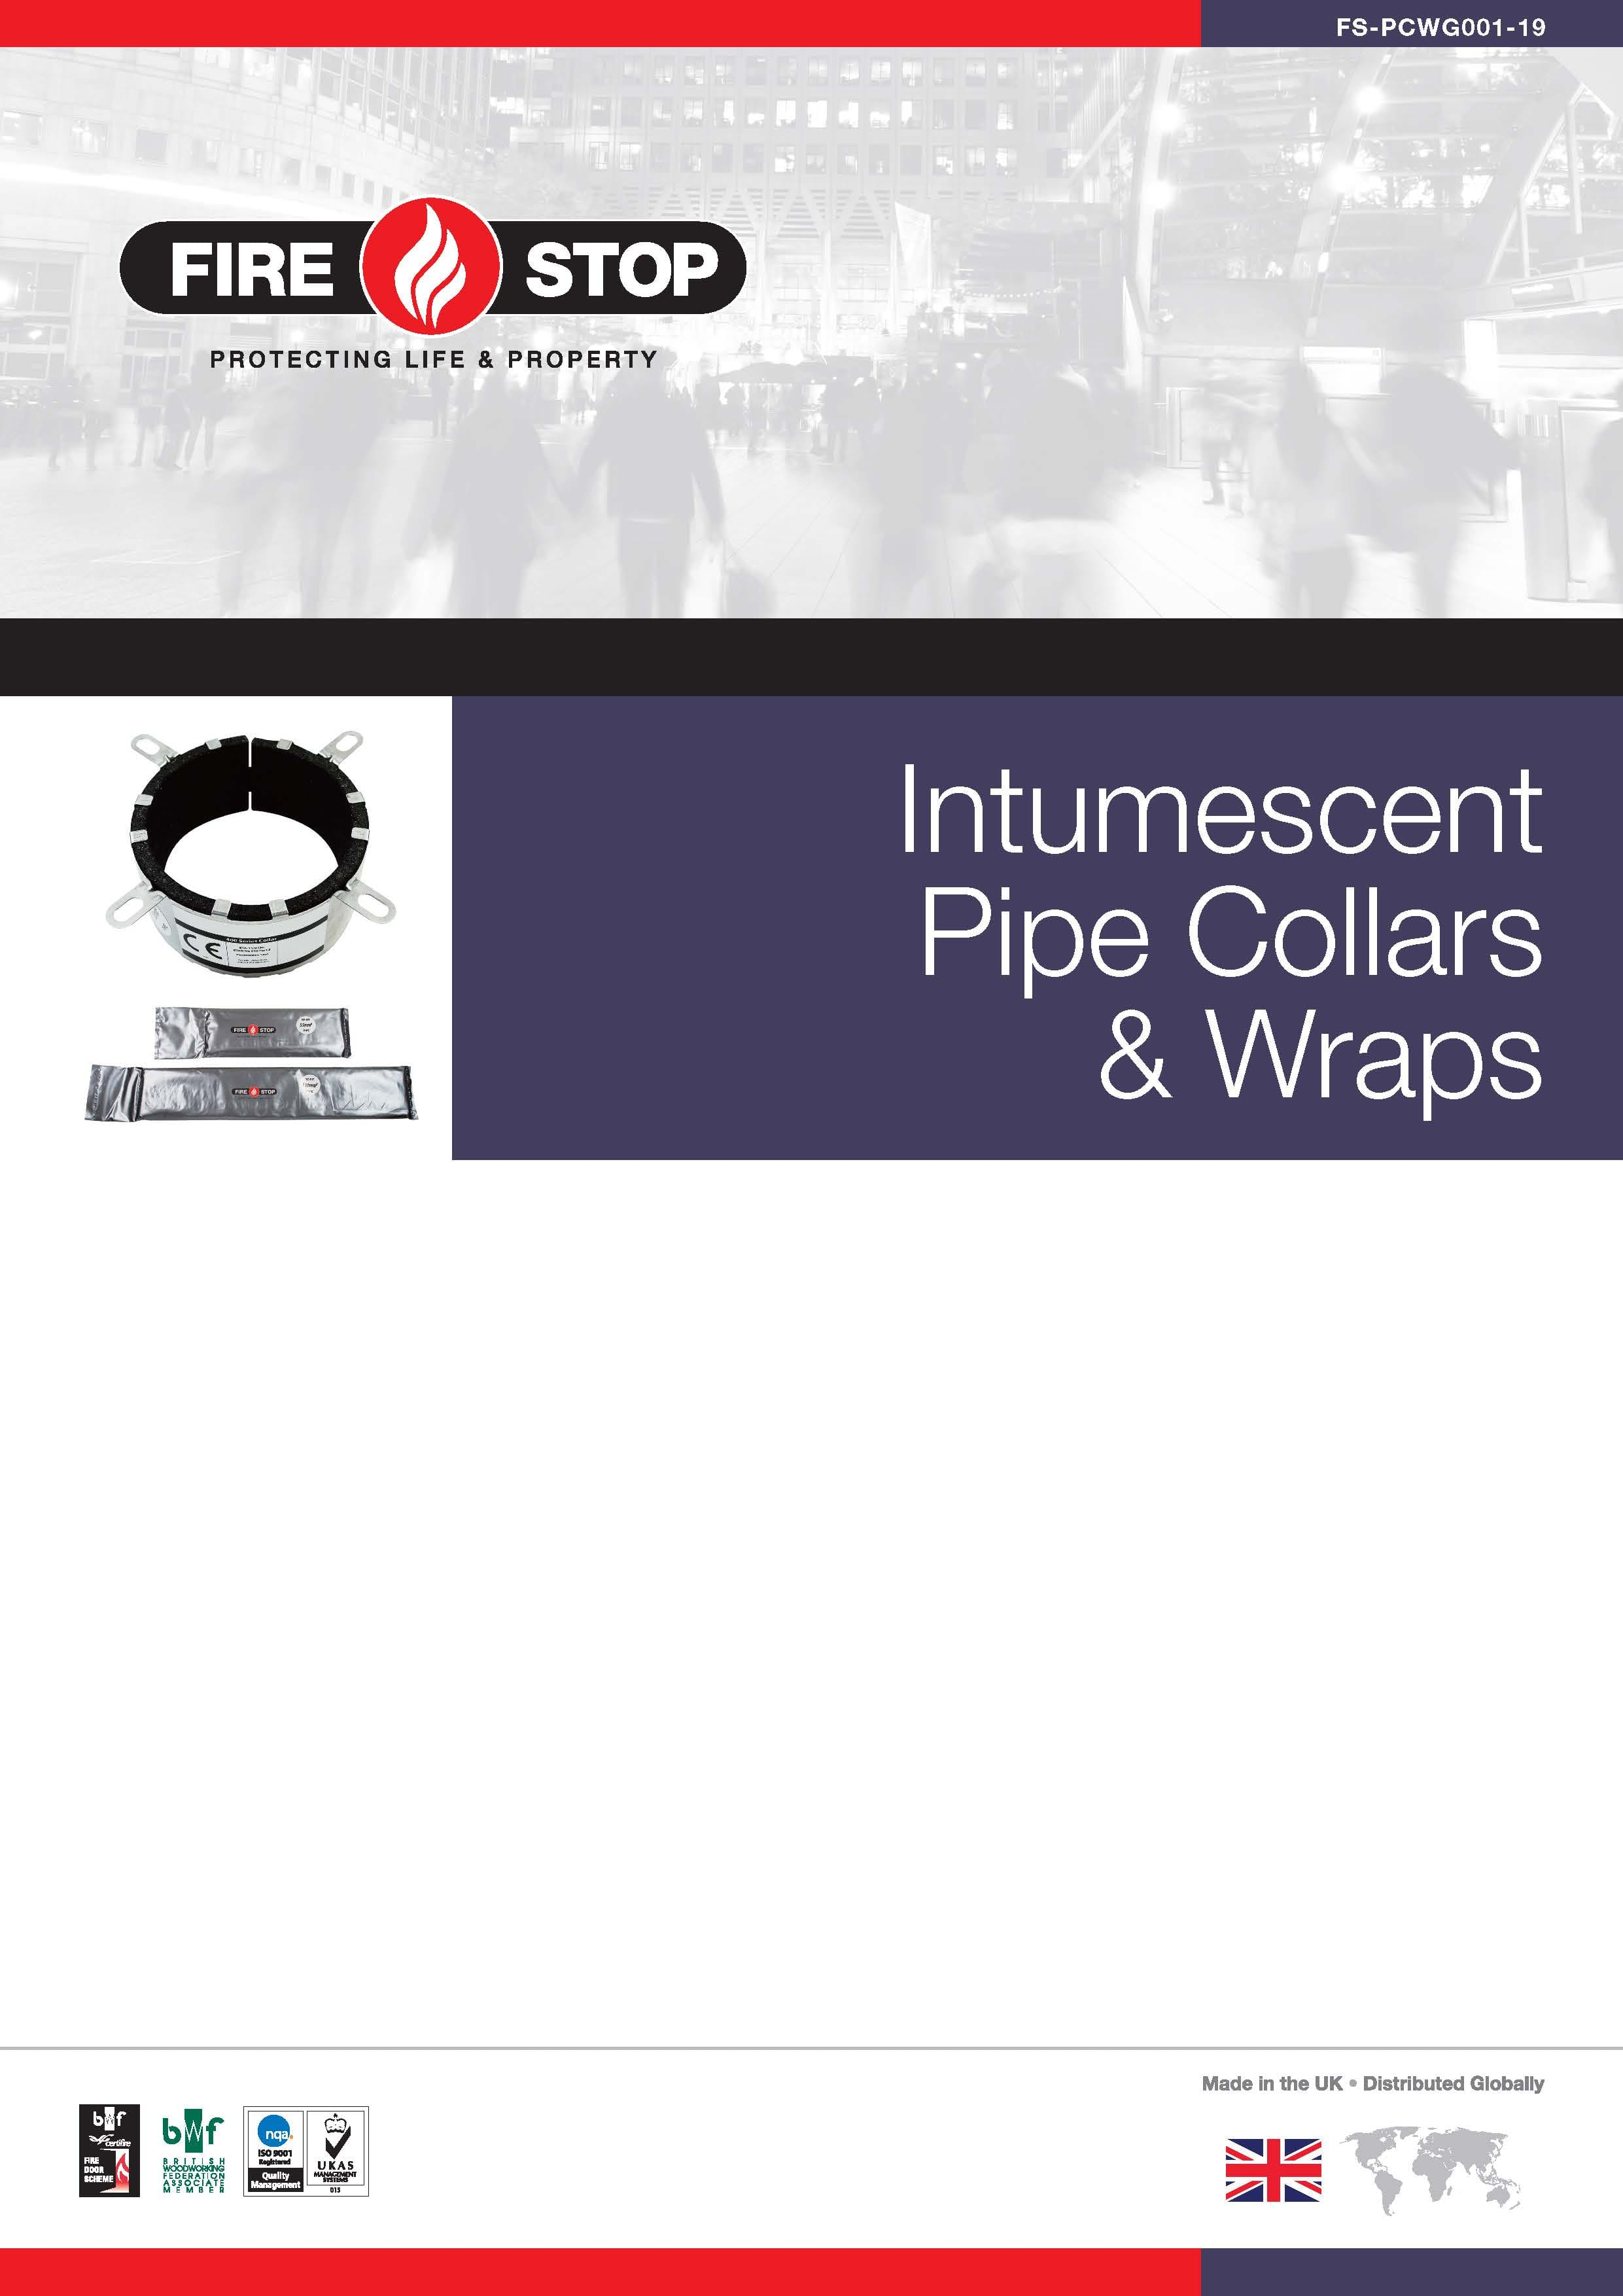 Firestop Intumescent Pipe Collars & Wraps brochure front page